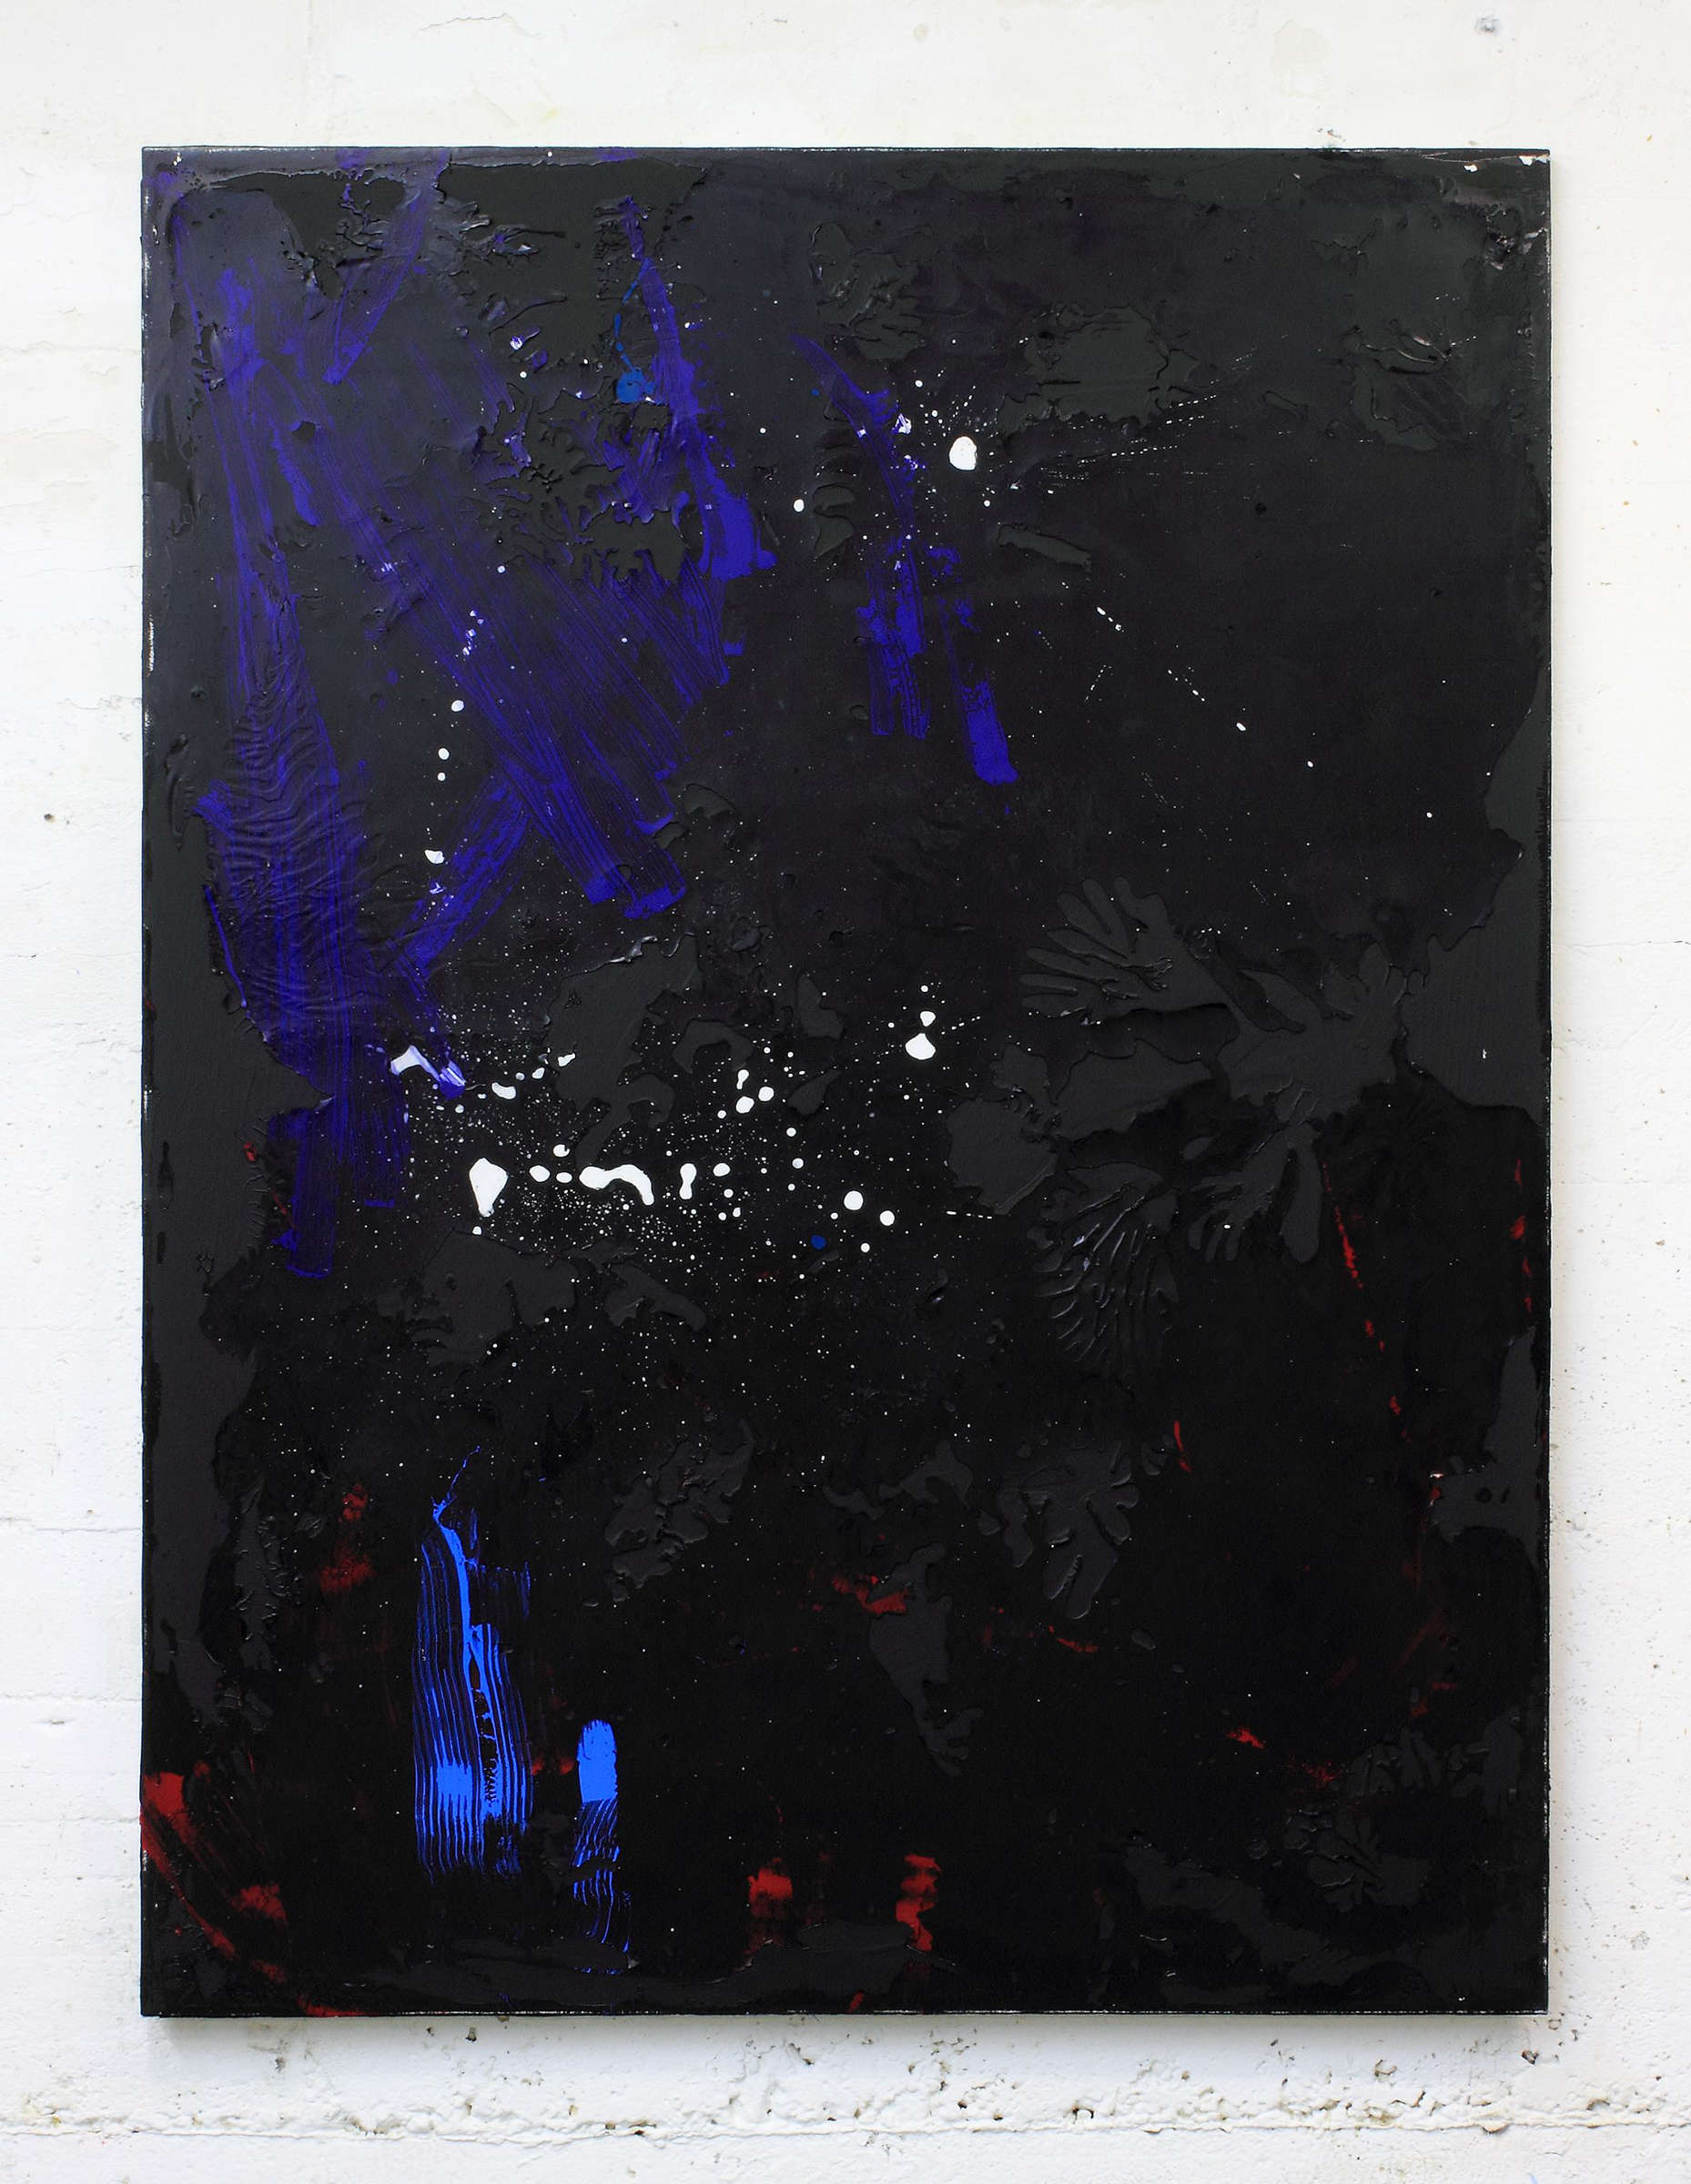 21_tiziano martini, 2015, untitled, acrylics, dirt and monothype process on black acrylic paint on primer on cotton, cm 160x120, courtesy the artist